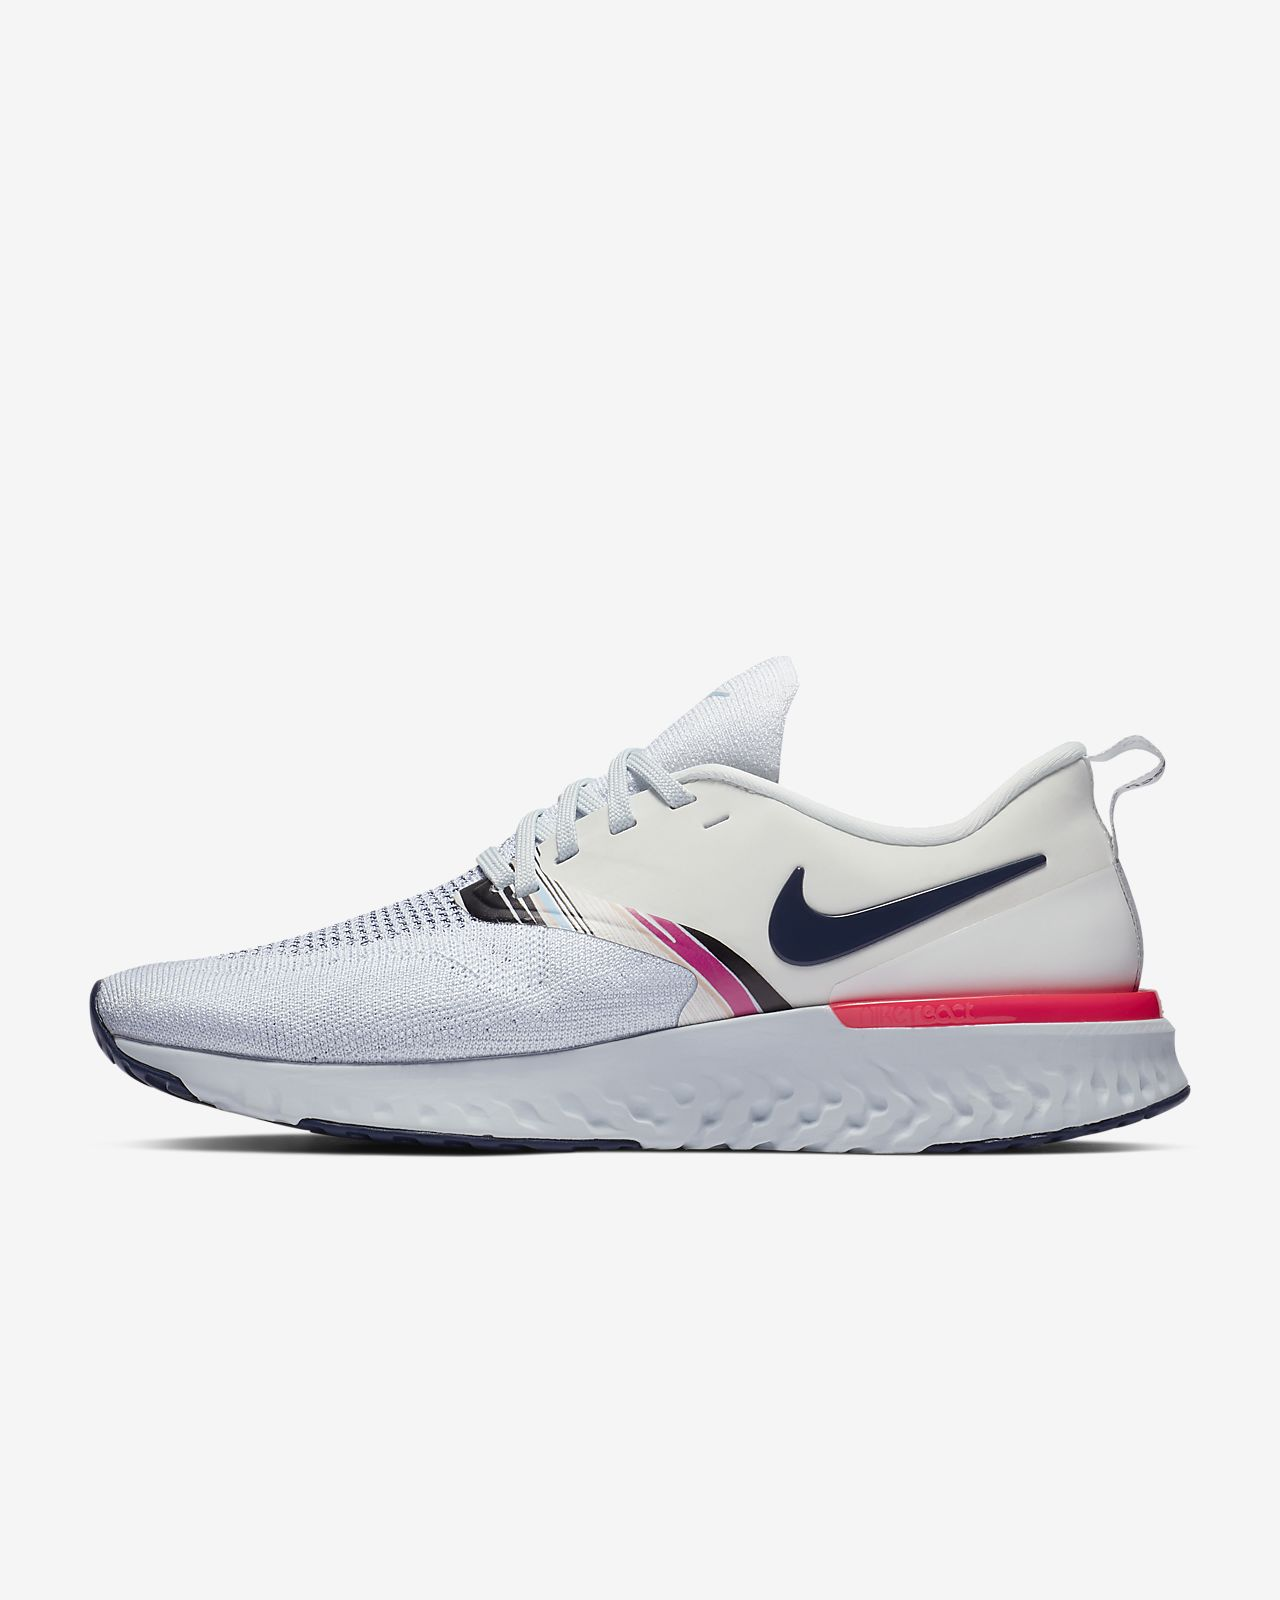 7d0b5a0cdd3 Low Resolution Nike Odyssey React Flyknit 2 Premium Women s Running Shoe Nike  Odyssey React Flyknit 2 Premium Women s Running Shoe